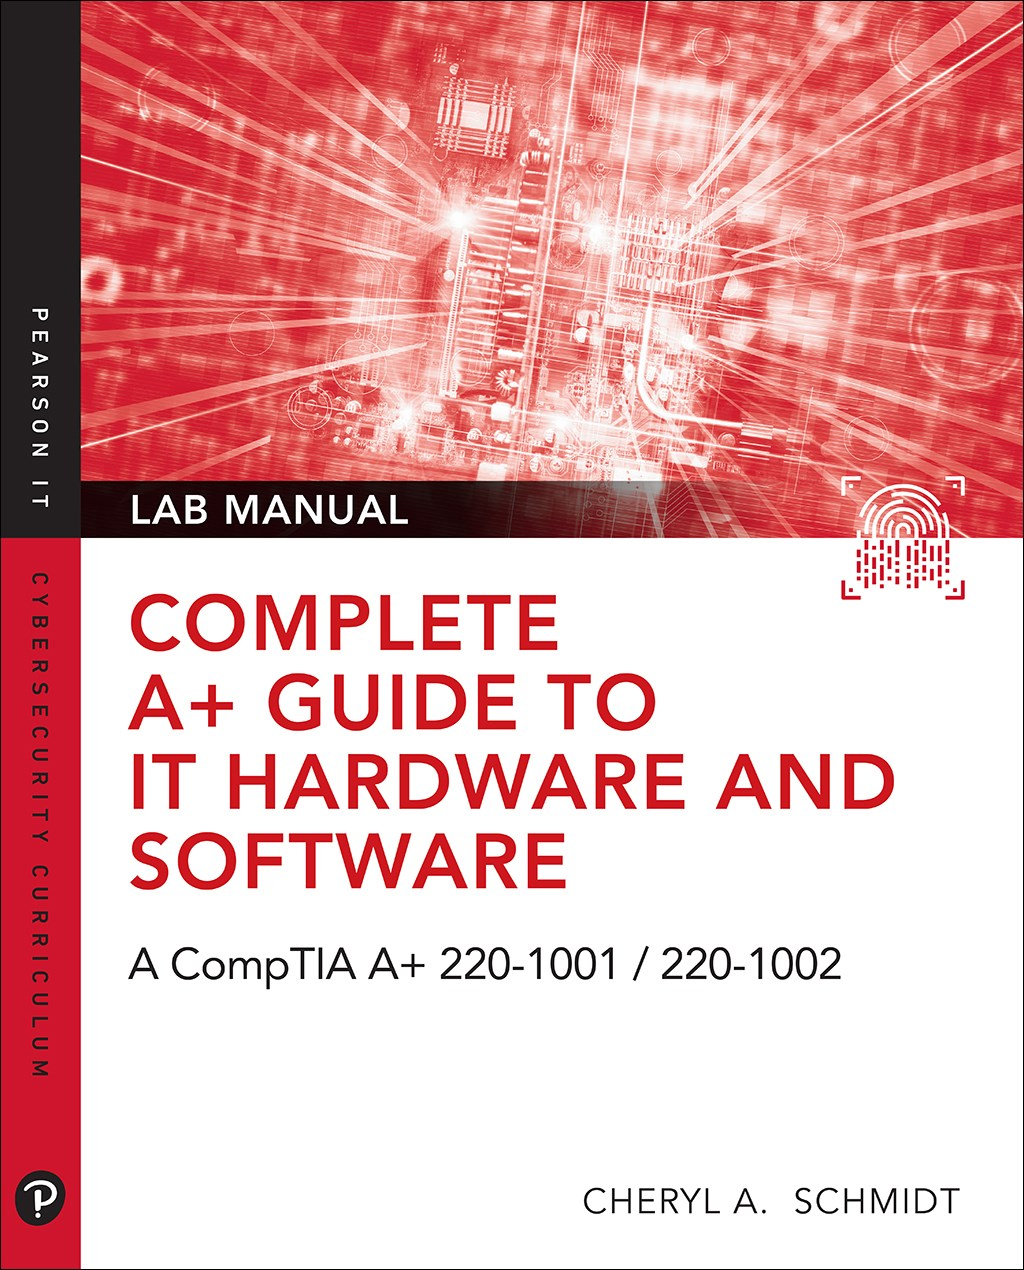 Complete A+ Guide to IT Hardware and Software Lab Manual: A CompTIA A+ Core 1 (220-1001) & CompTIA A+ Core 2 (220-1002) Lab Manual, 8th Edition